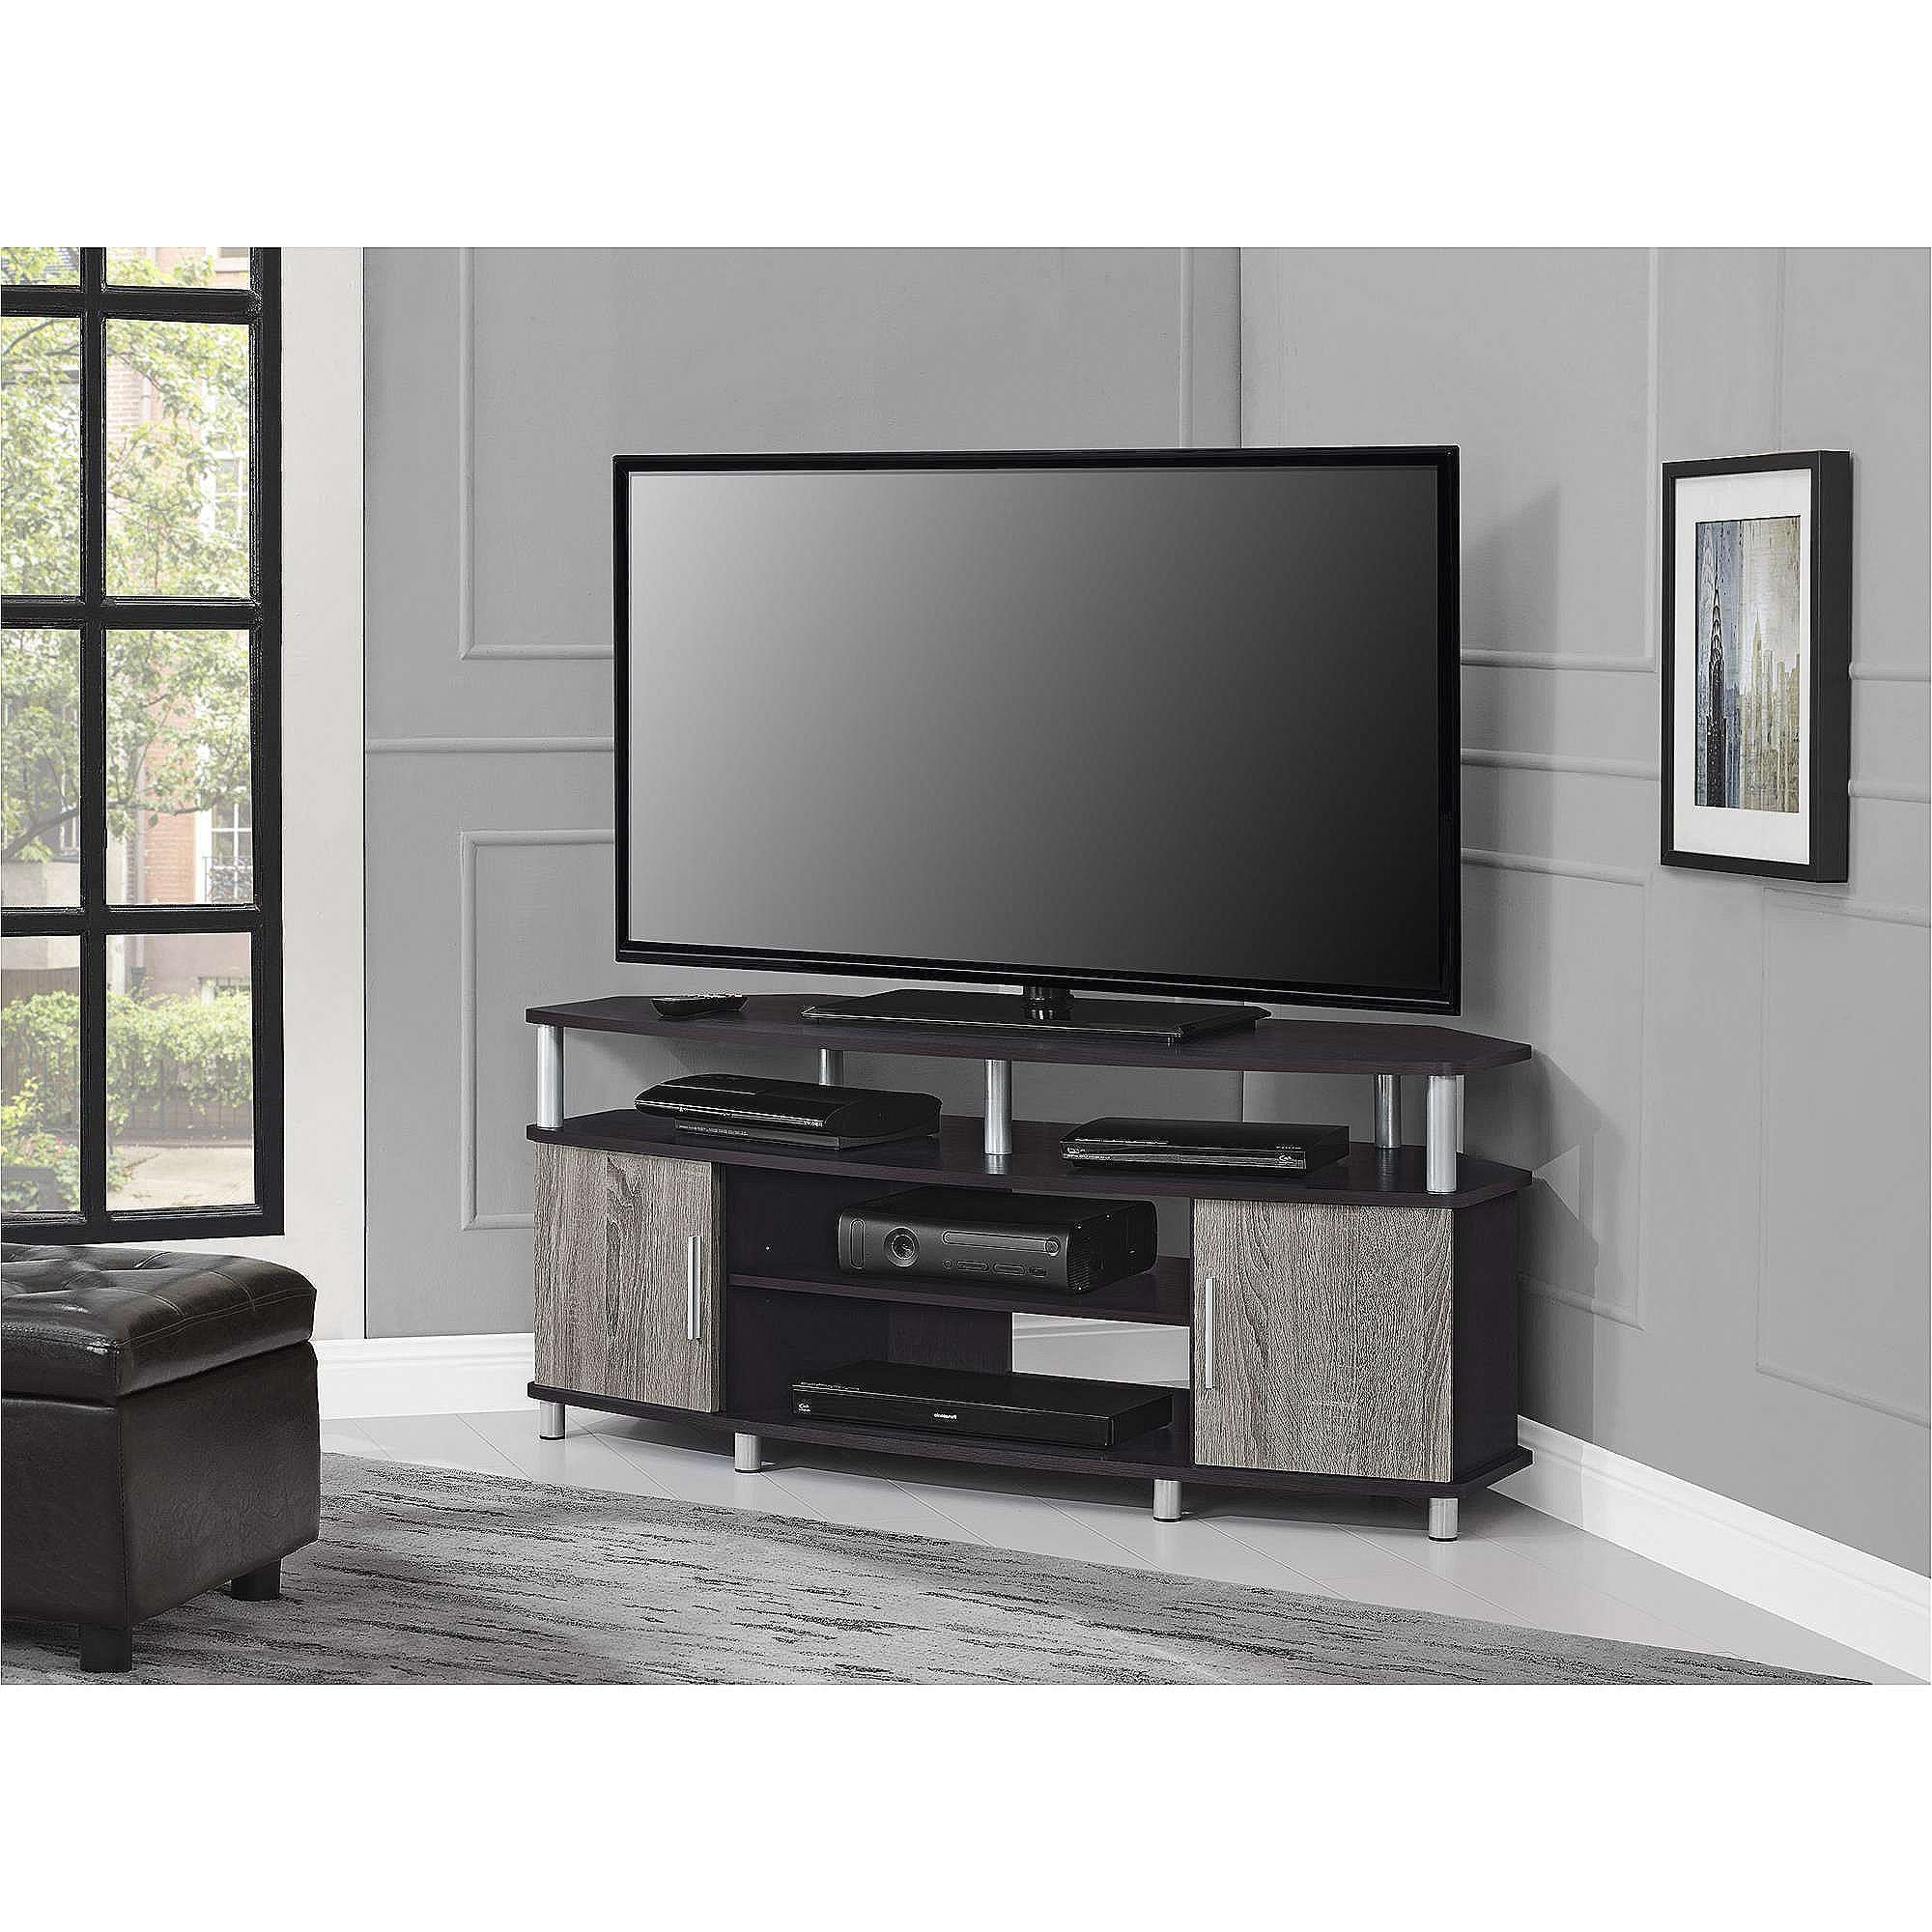 Luxury Modern Corner Tv Stand (36 Photos) | Bathgroundspath In Luxury Tv Stands (View 11 of 15)